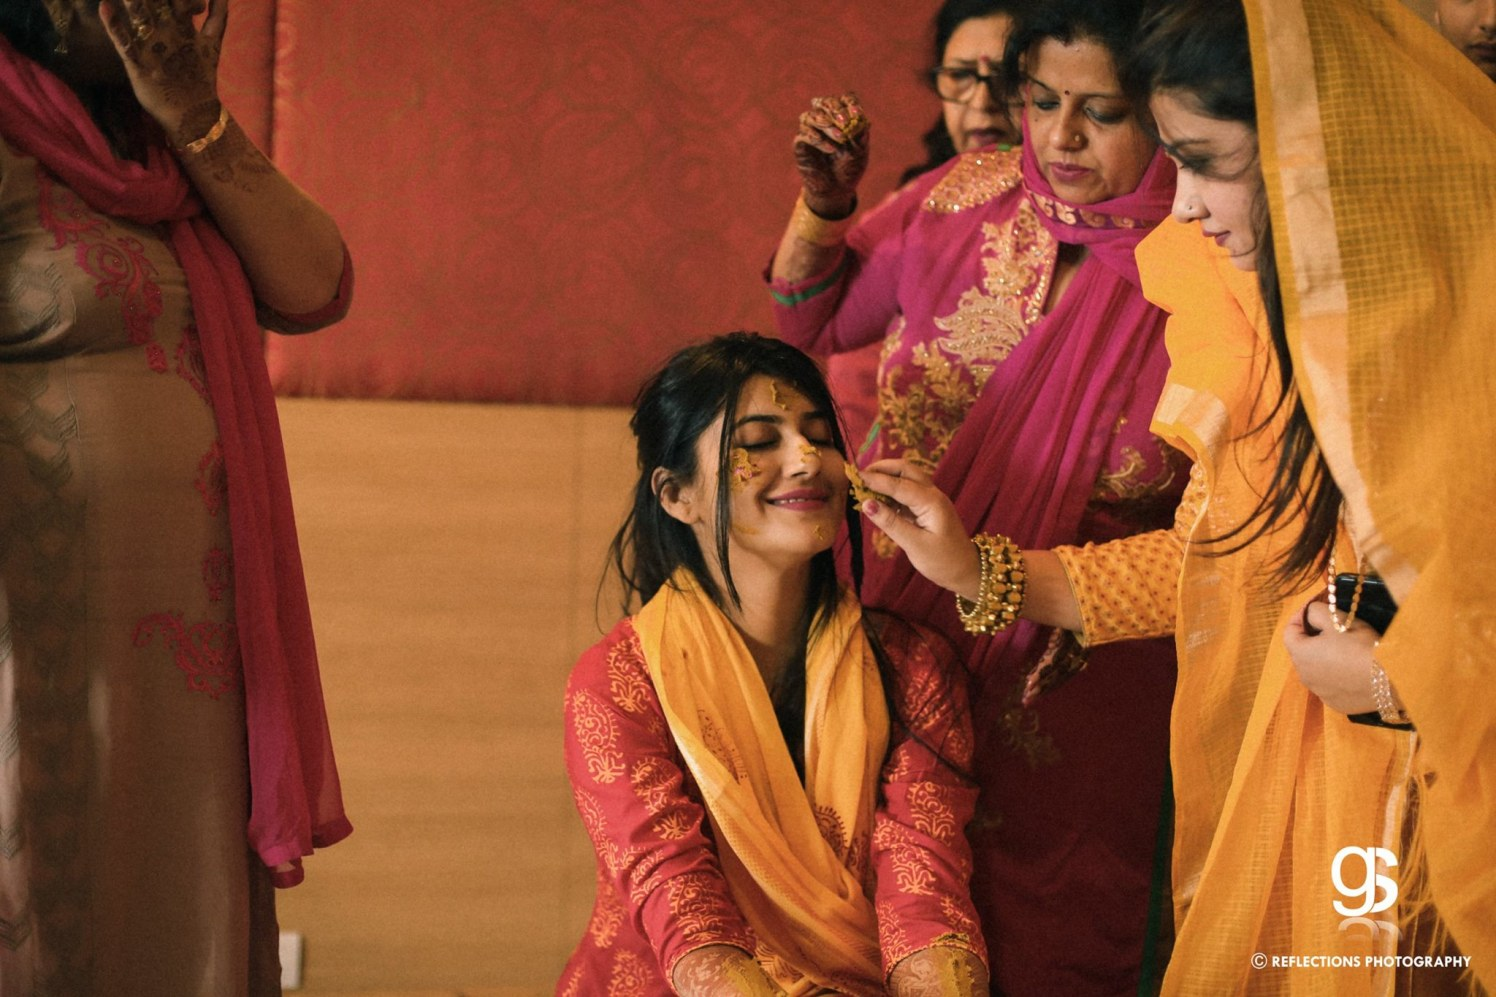 Pinch of turmeric by Reflections Photography Wedding-photography | Weddings Photos & Ideas